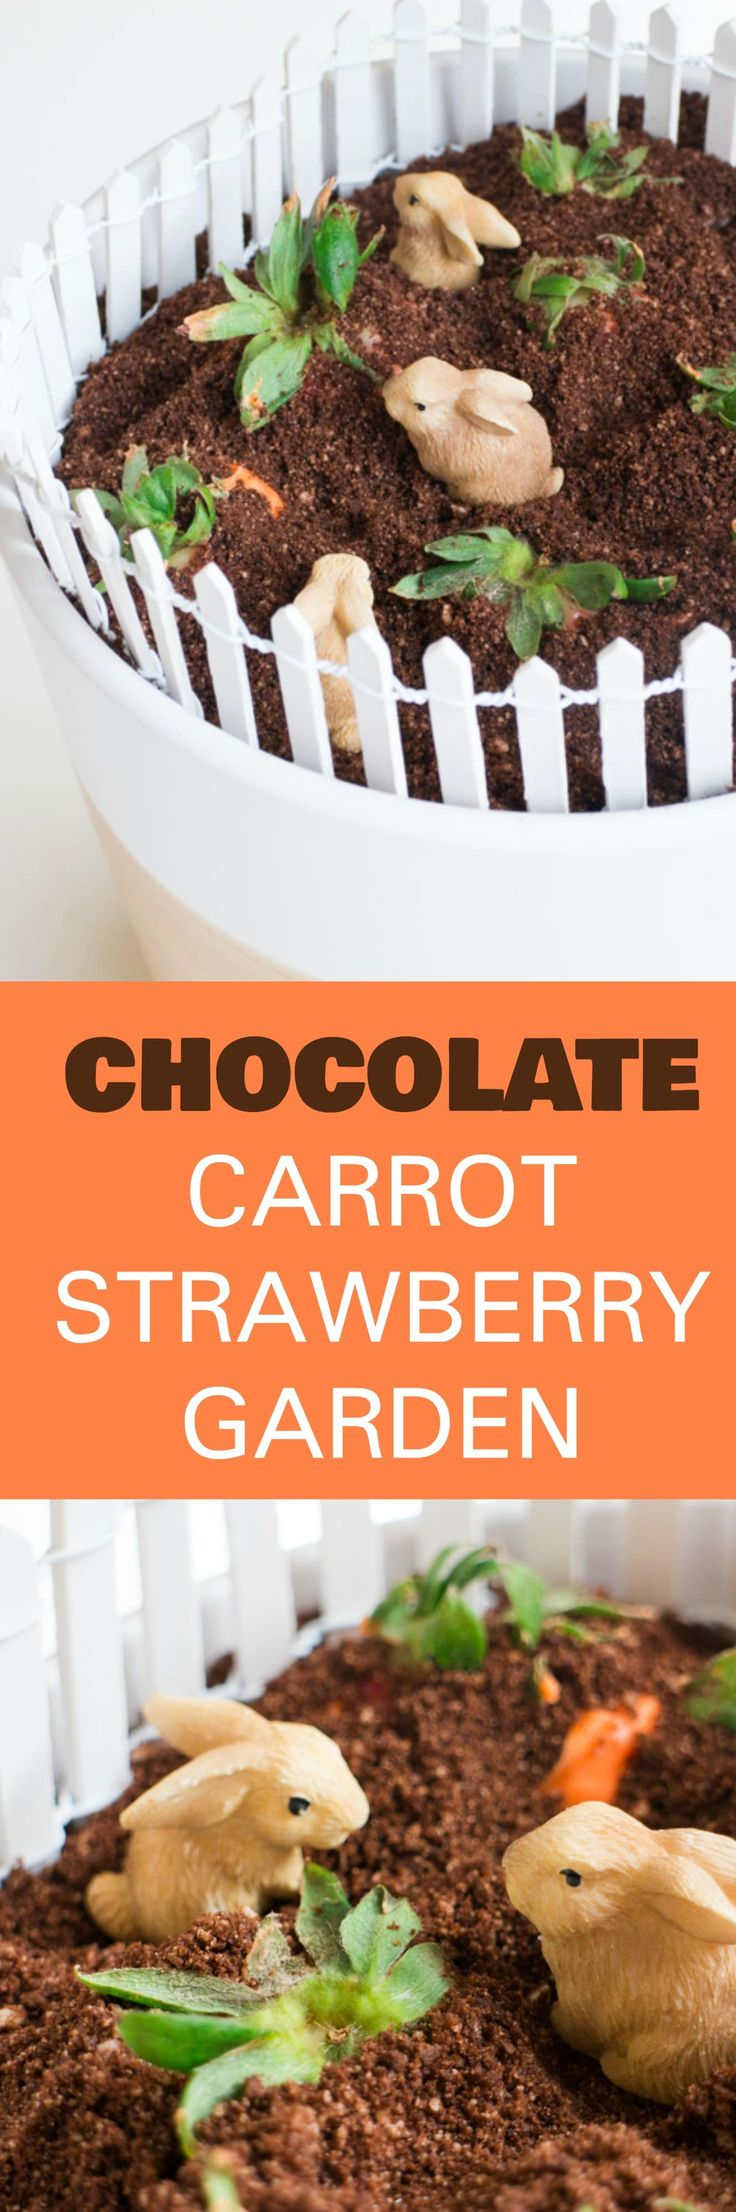 EDIBLE Chocolate Carrot Strawberry GARDEN is the perfect DIY Mother's day gift from kids! This simple craft uses chocolate cookies for dirt and chocolate covered strawberries for carrots! Place a few craft rabbits in the dirt and you have a beautiful edible vegetable garden! Great for toddlers,  preschoolers and older children to make for Mothers and Grandmas who love to garden!